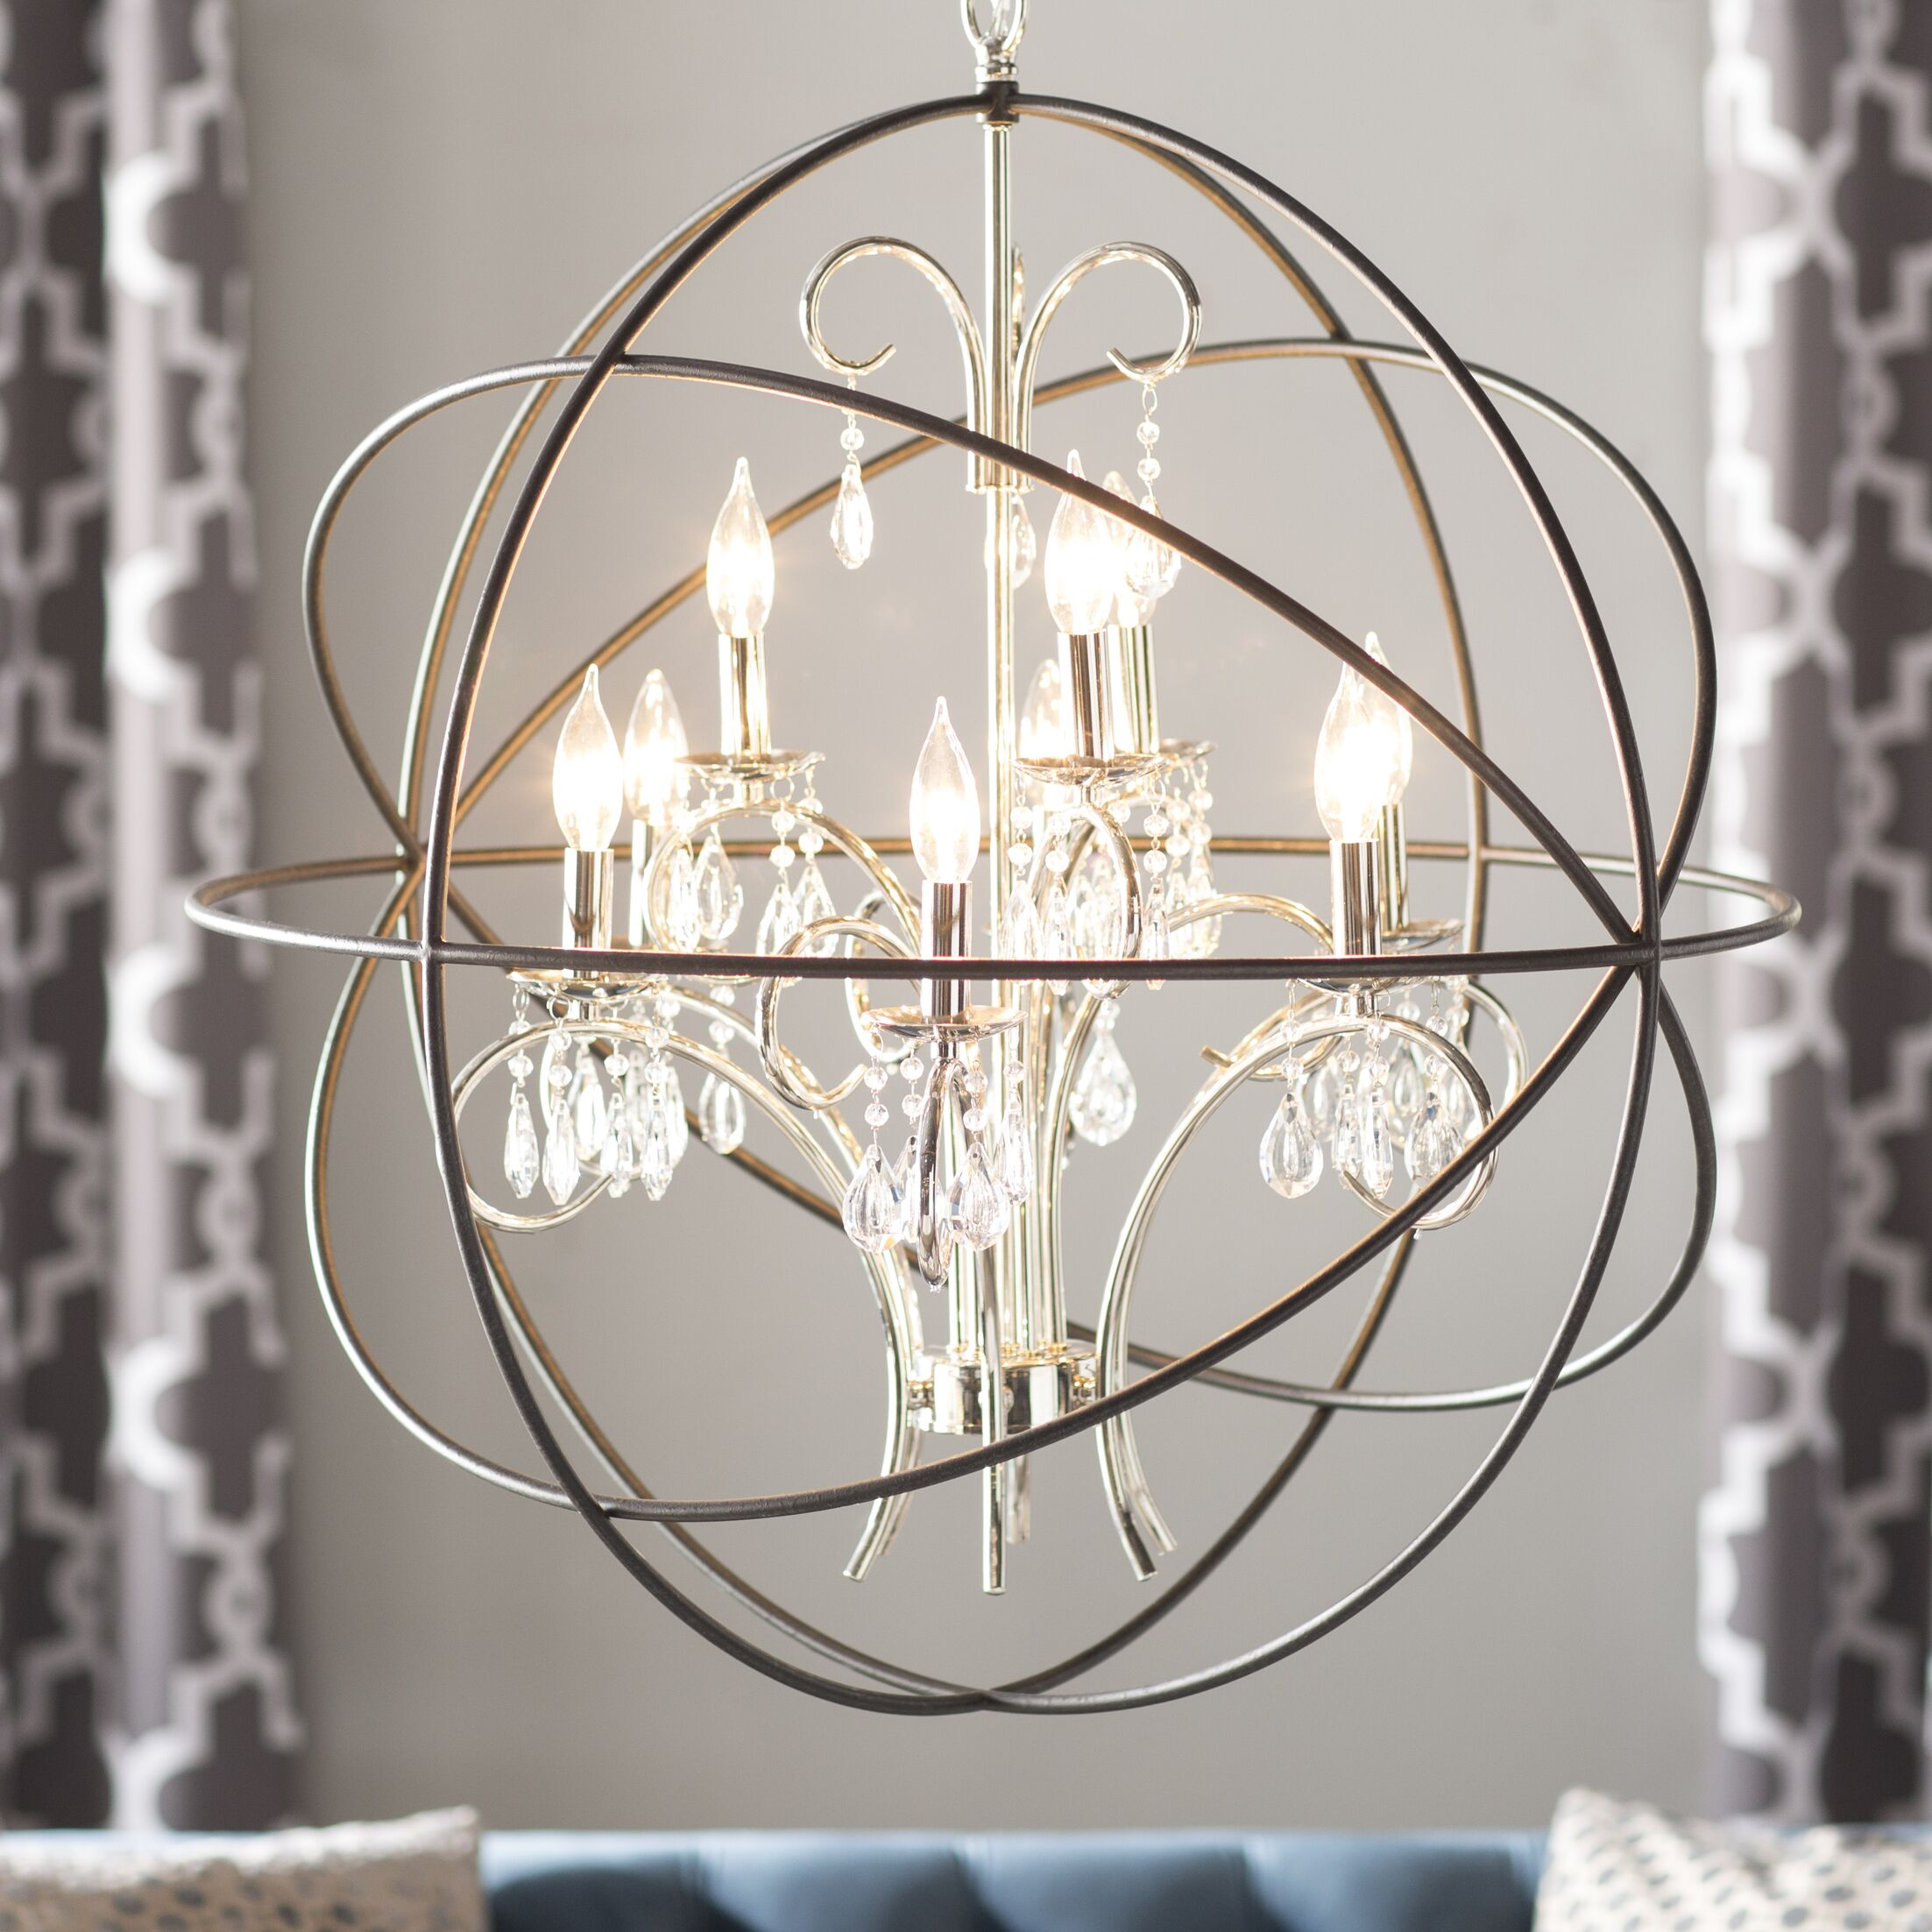 Joaquin 9-Light Candle-Style Chandelier Finish: Anthracite and Polished Nickel